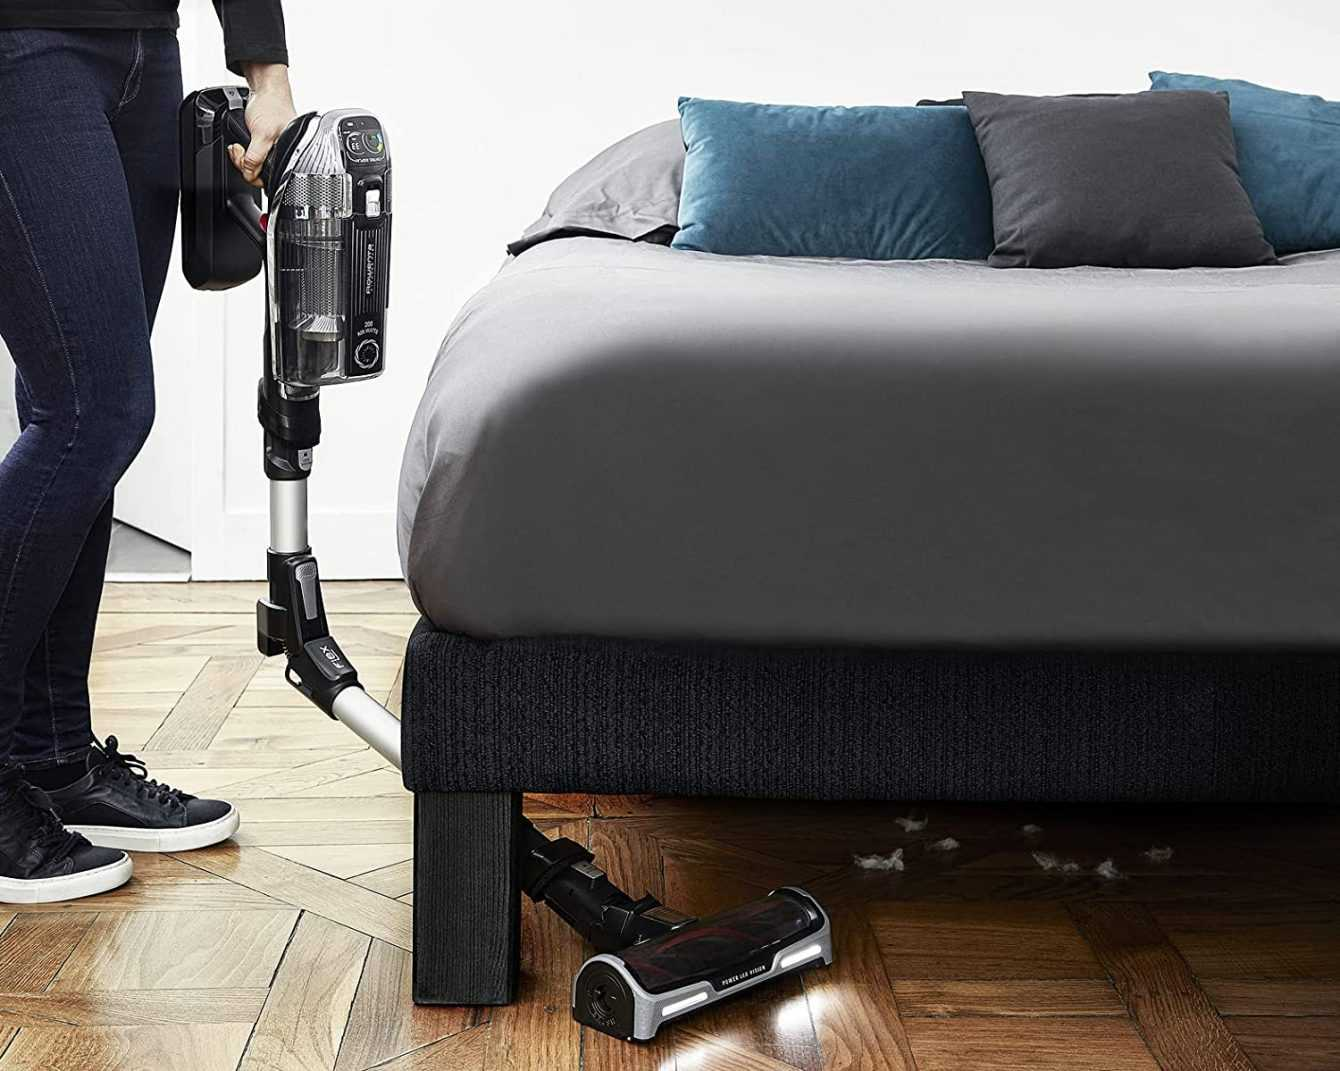 Rowenta X-Force Flex 14.60: the top of the range cordless vacuum cleaner